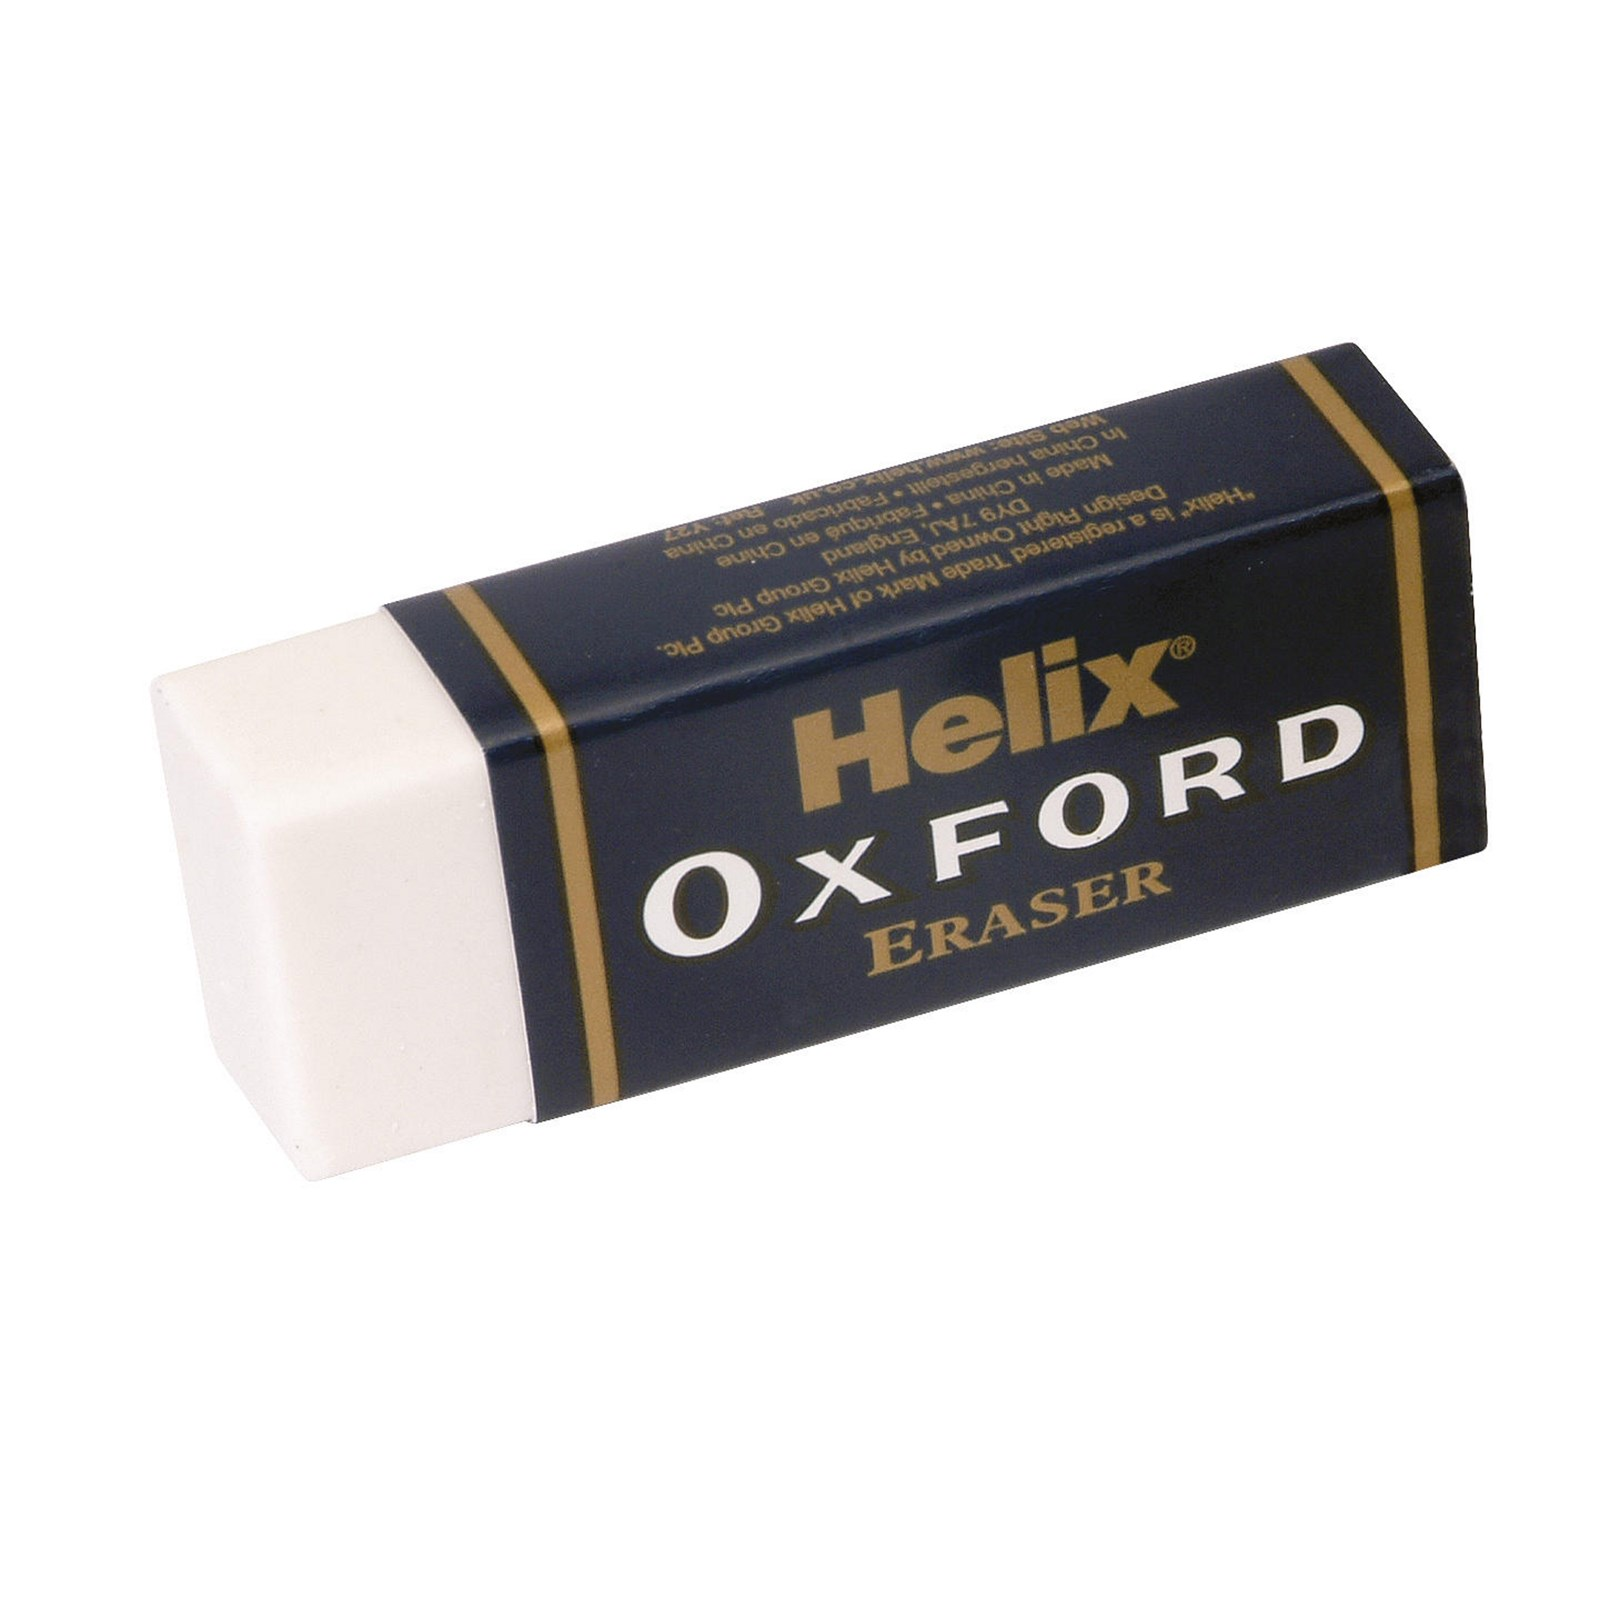 Oxford Large Sleeved Eraser - Pack of 20 BUY ONE GET ONE FREE